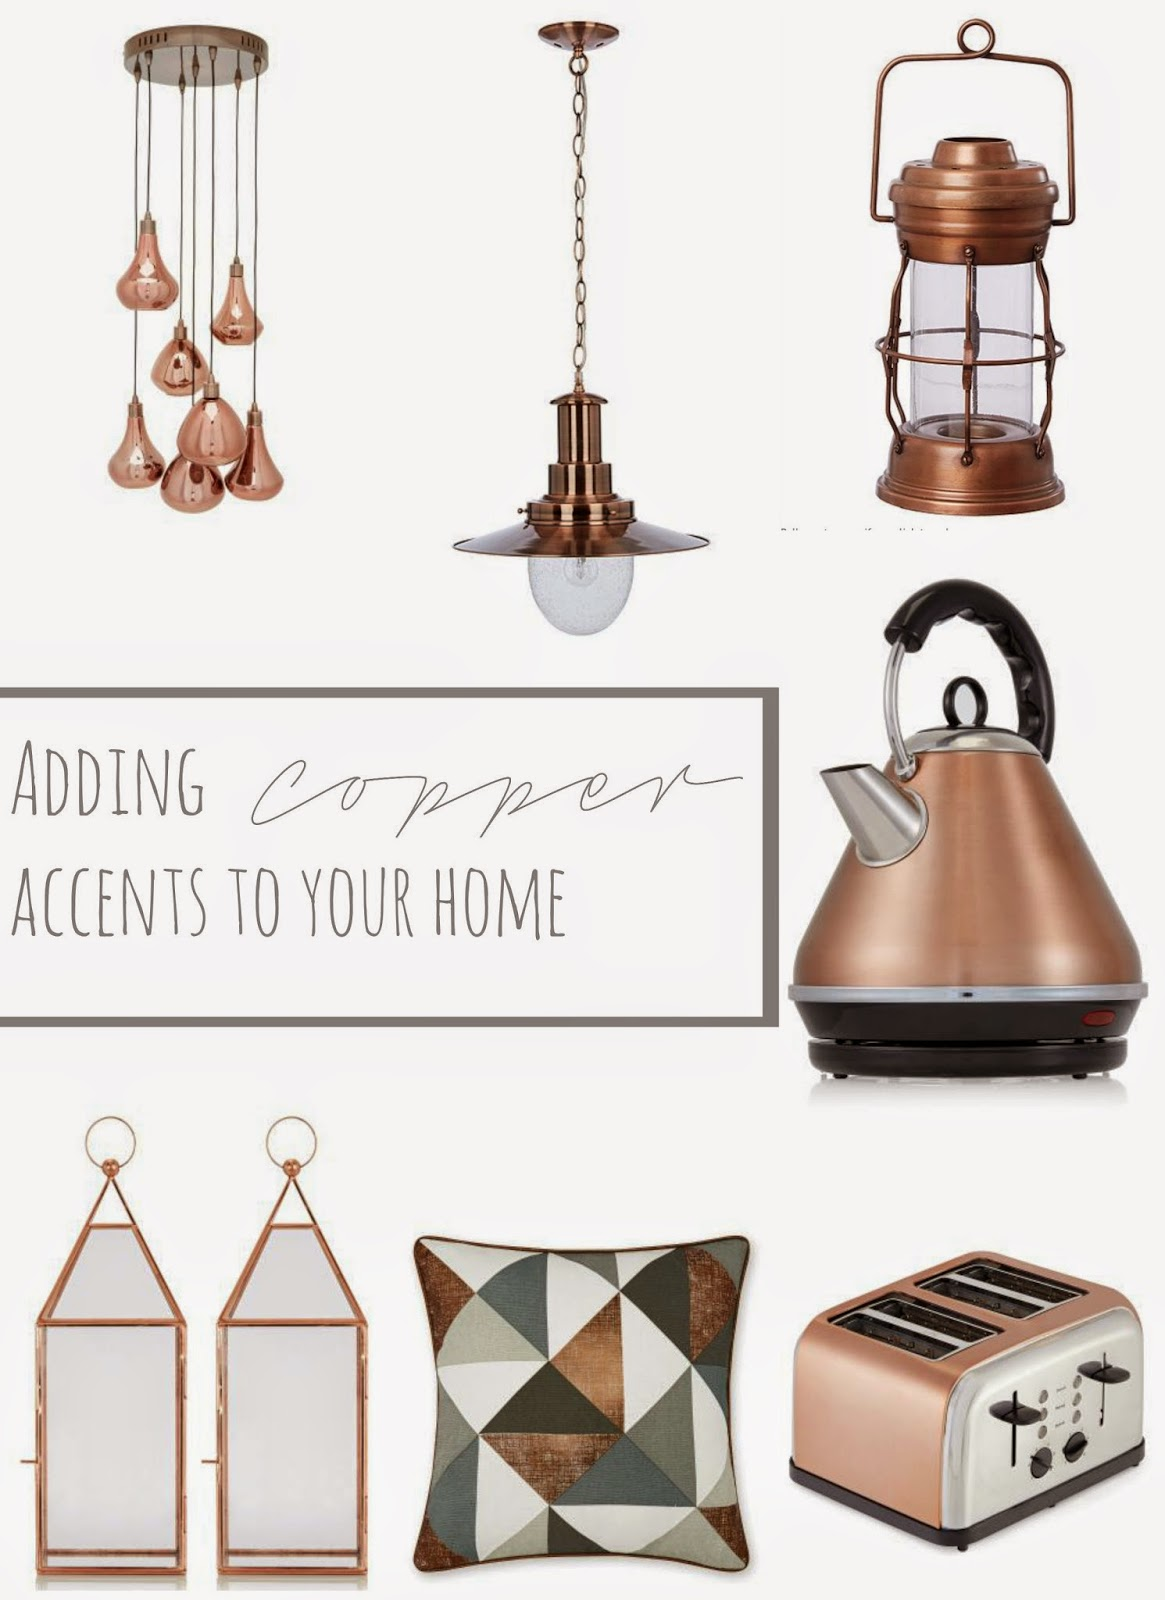 Copper Accents to your home